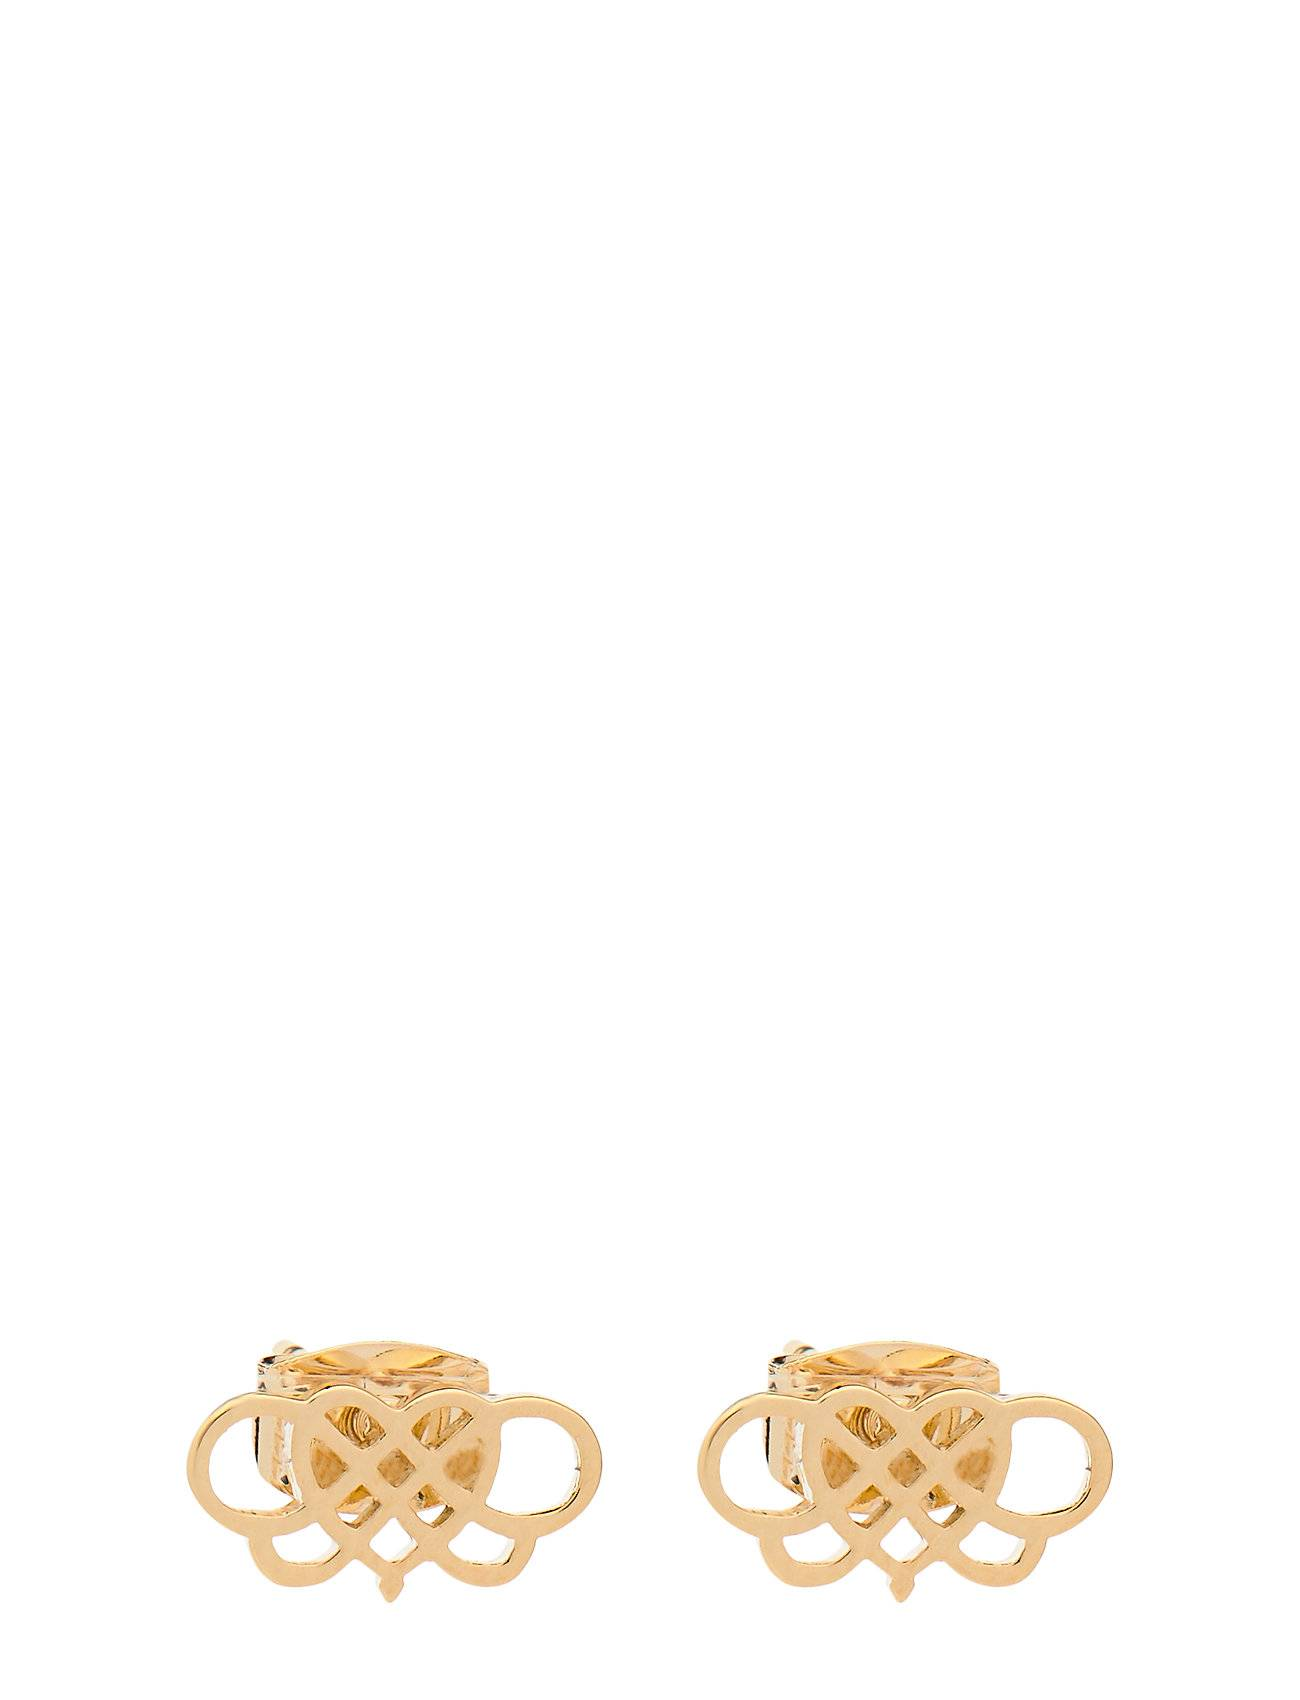 LILY AND ROSE Lily Signature Earrings - Gold Accessories Jewellery Earrings Studs Kulta LILY AND ROSE